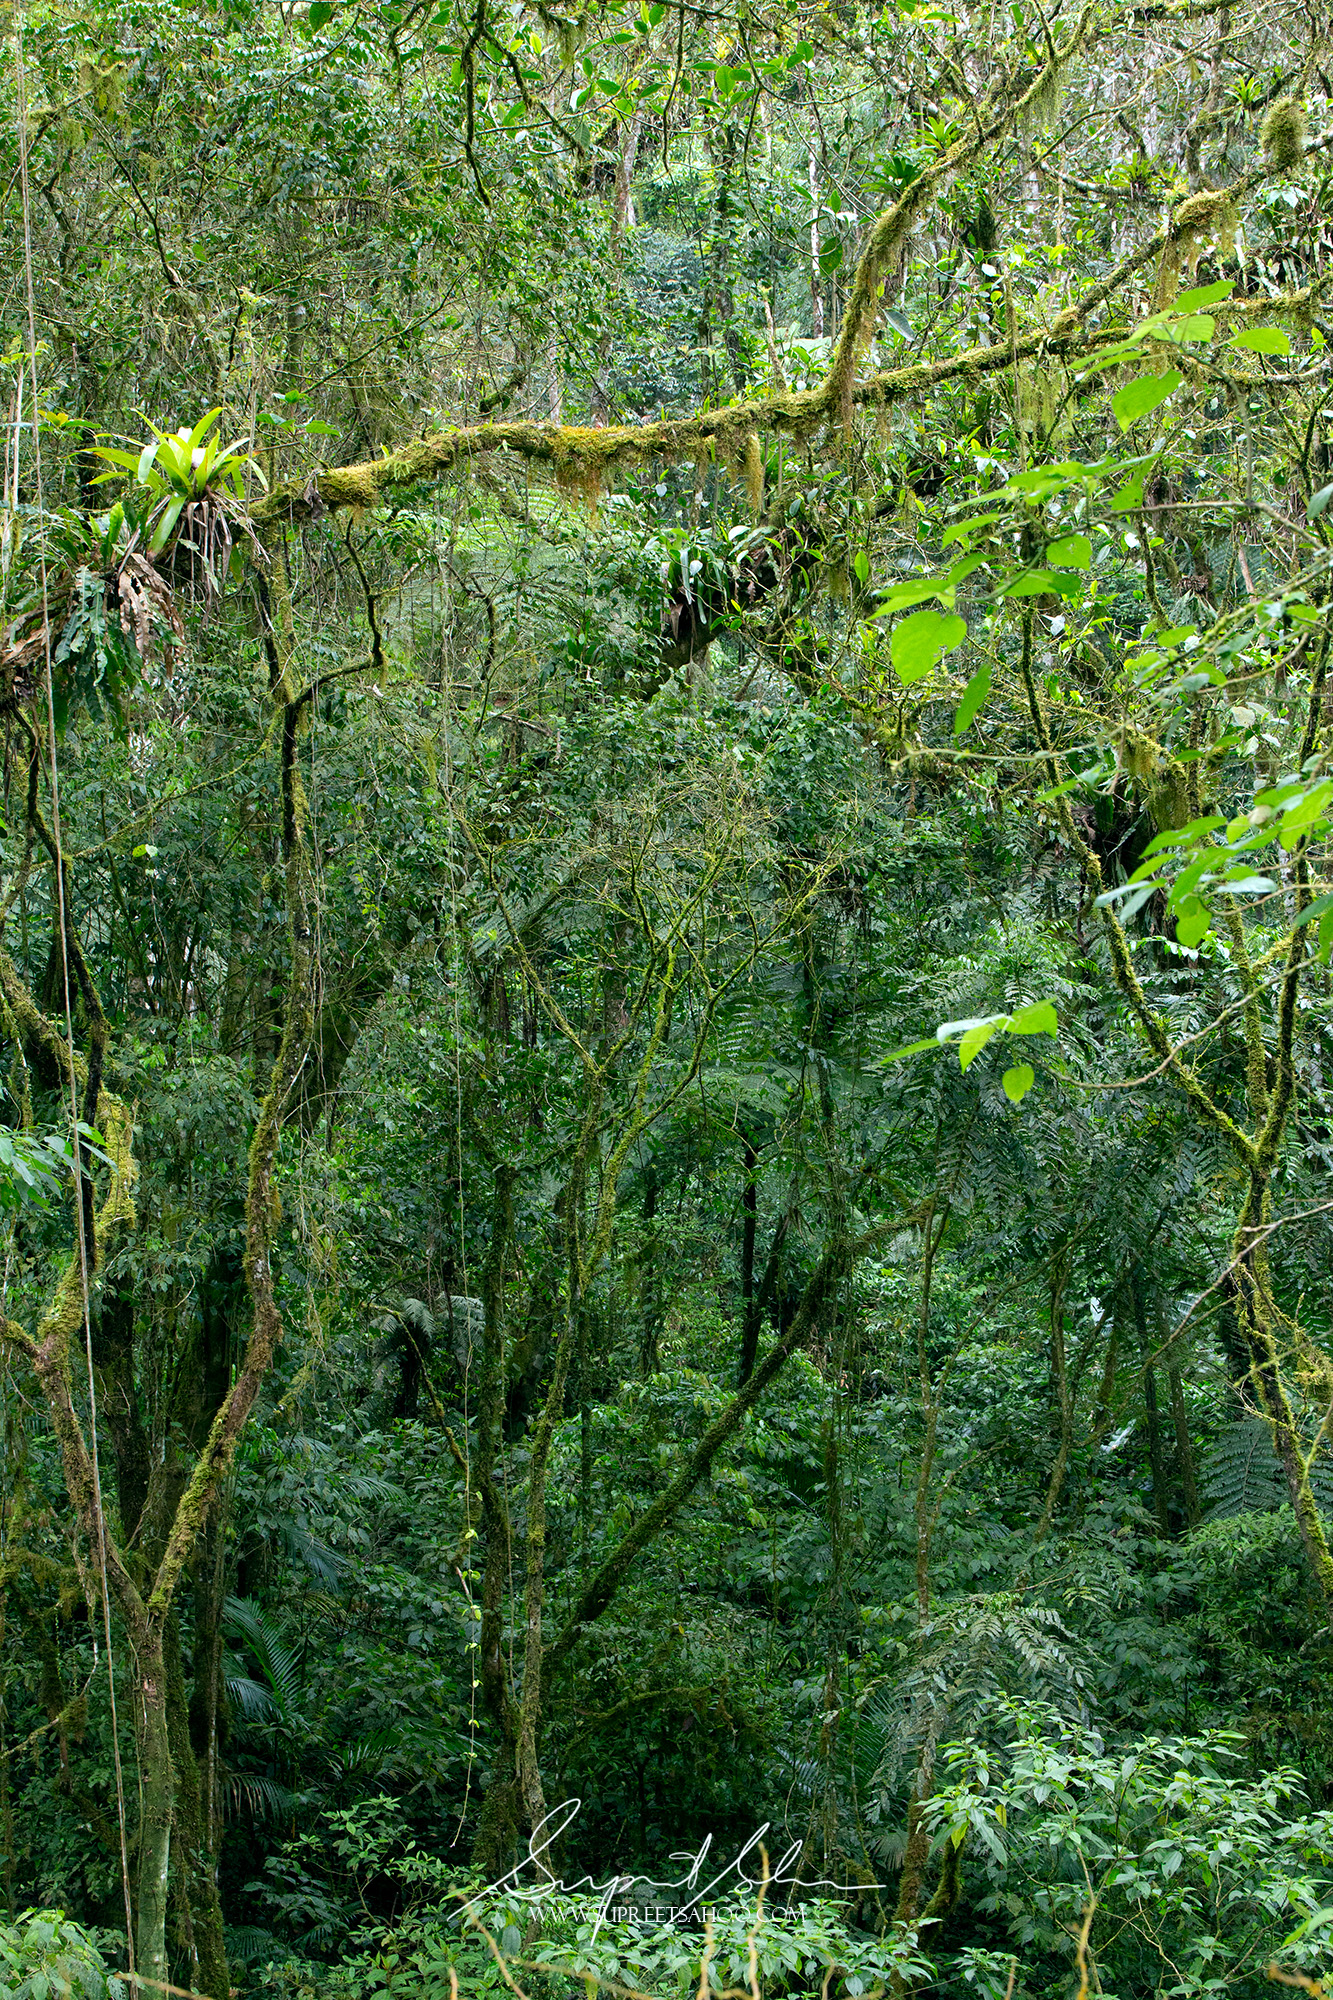 Cloud forest habitat of Northwest Ecuador